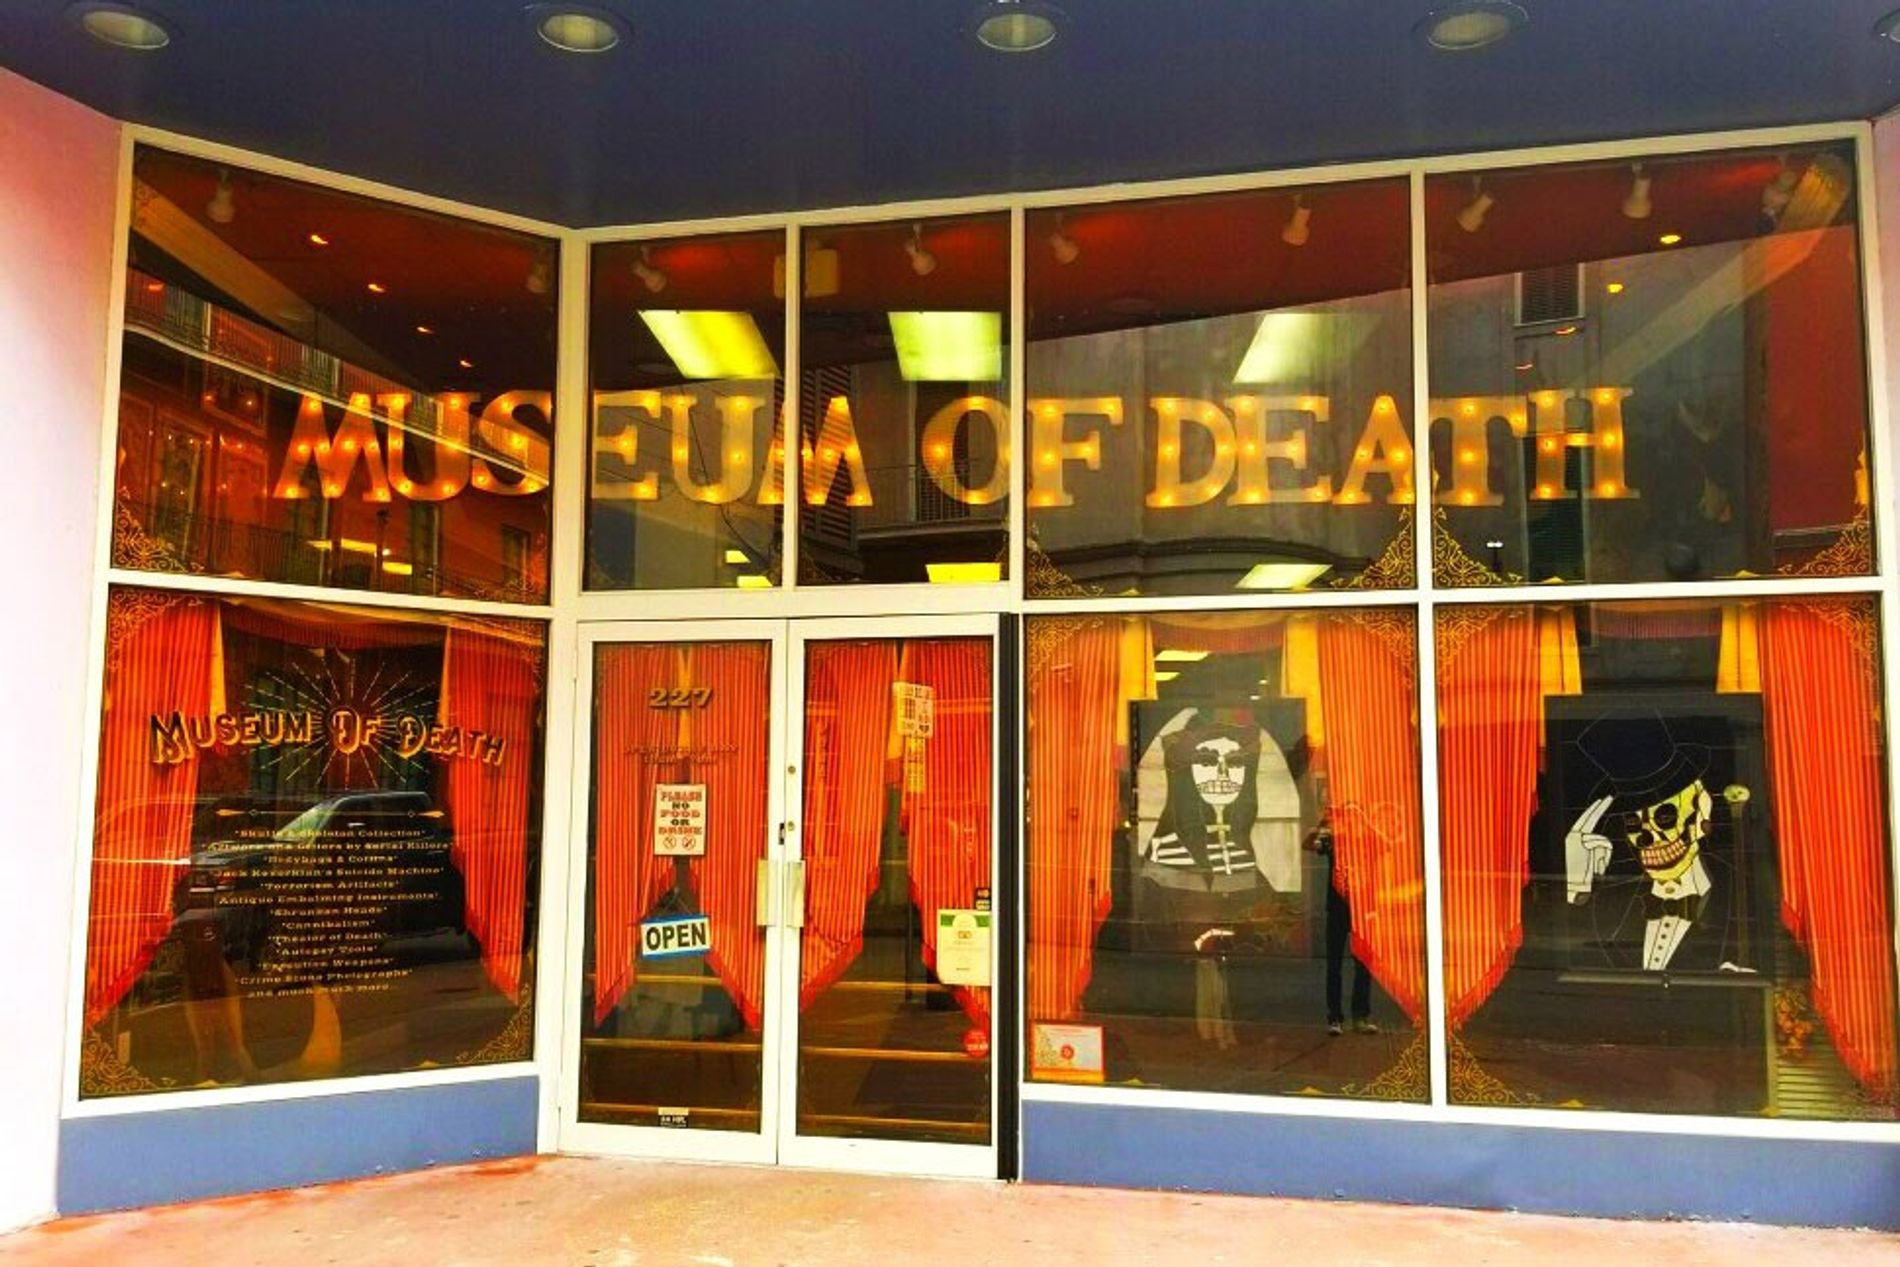 This Museum Tries to Make Death Seem Less Frightening